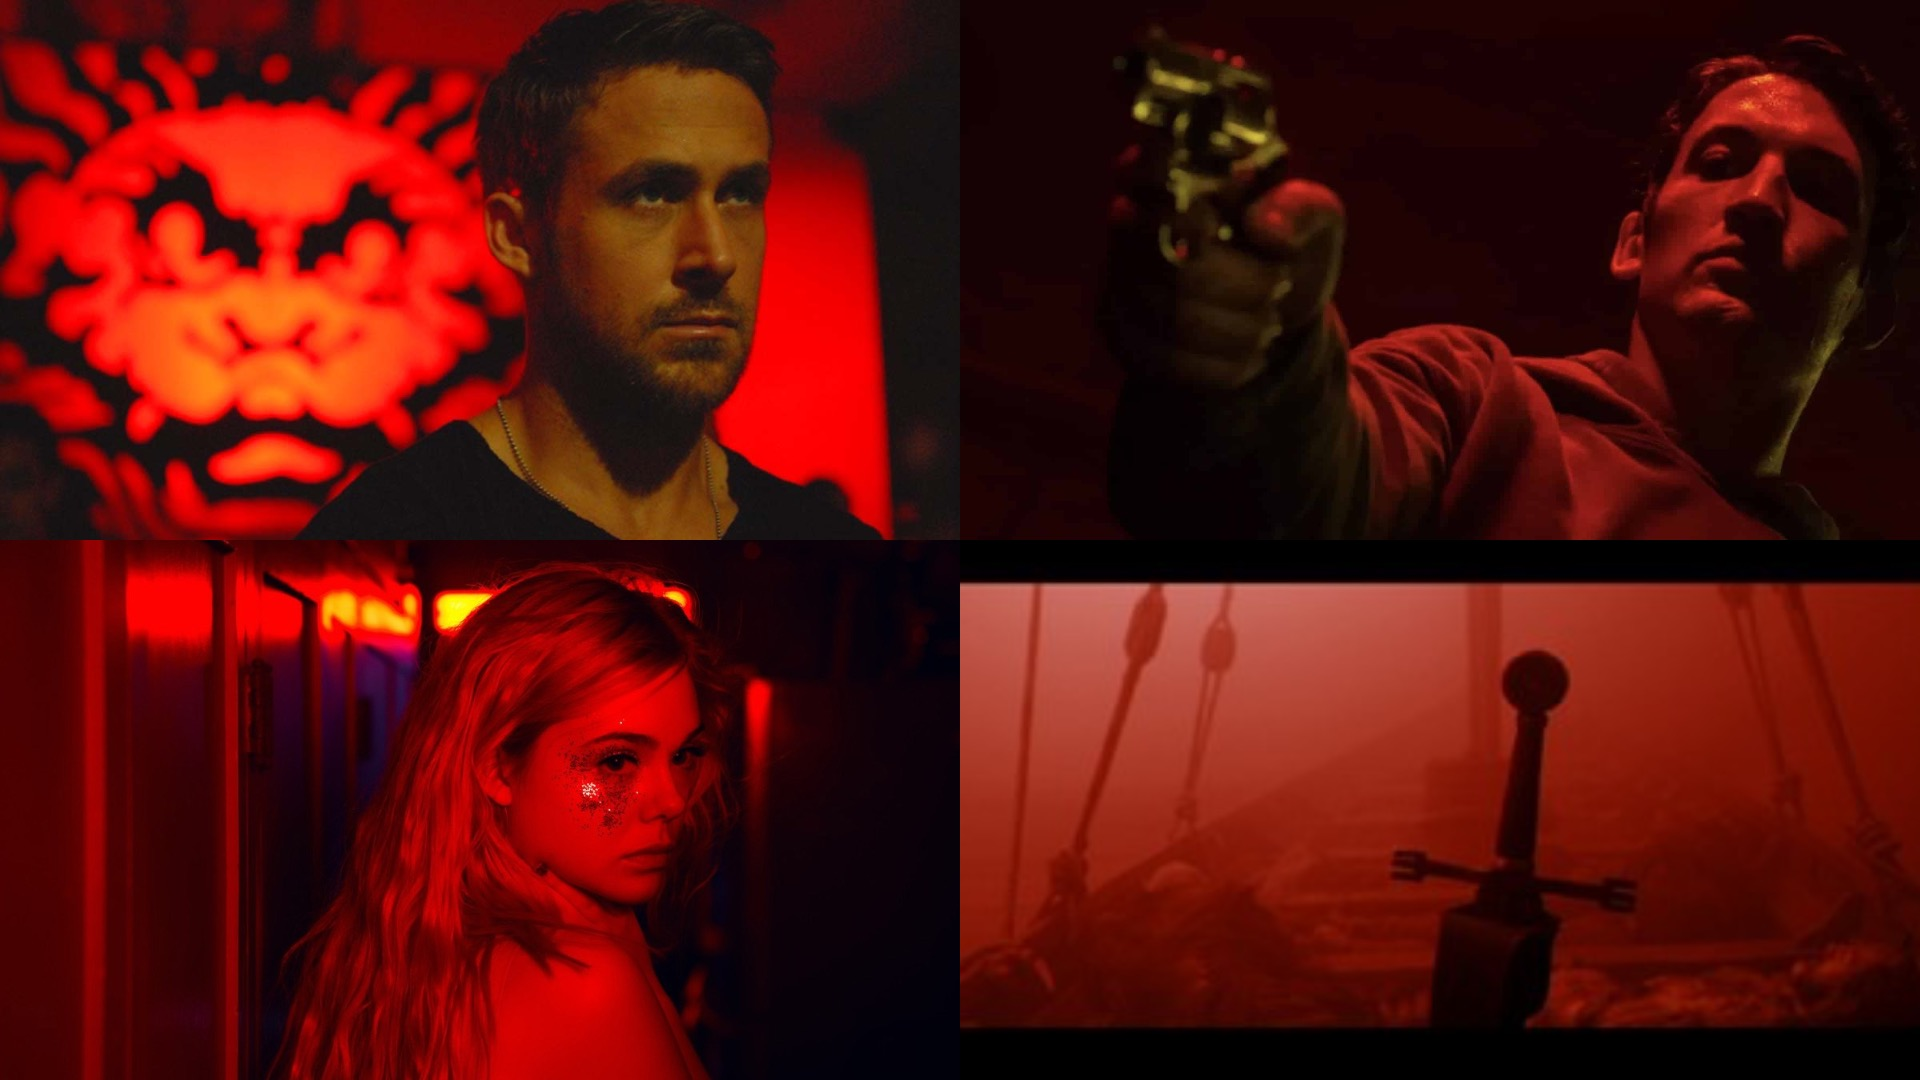 Solo Dio perdona, Too Old To Die Young, The Neon Demon, Valhalla Rising